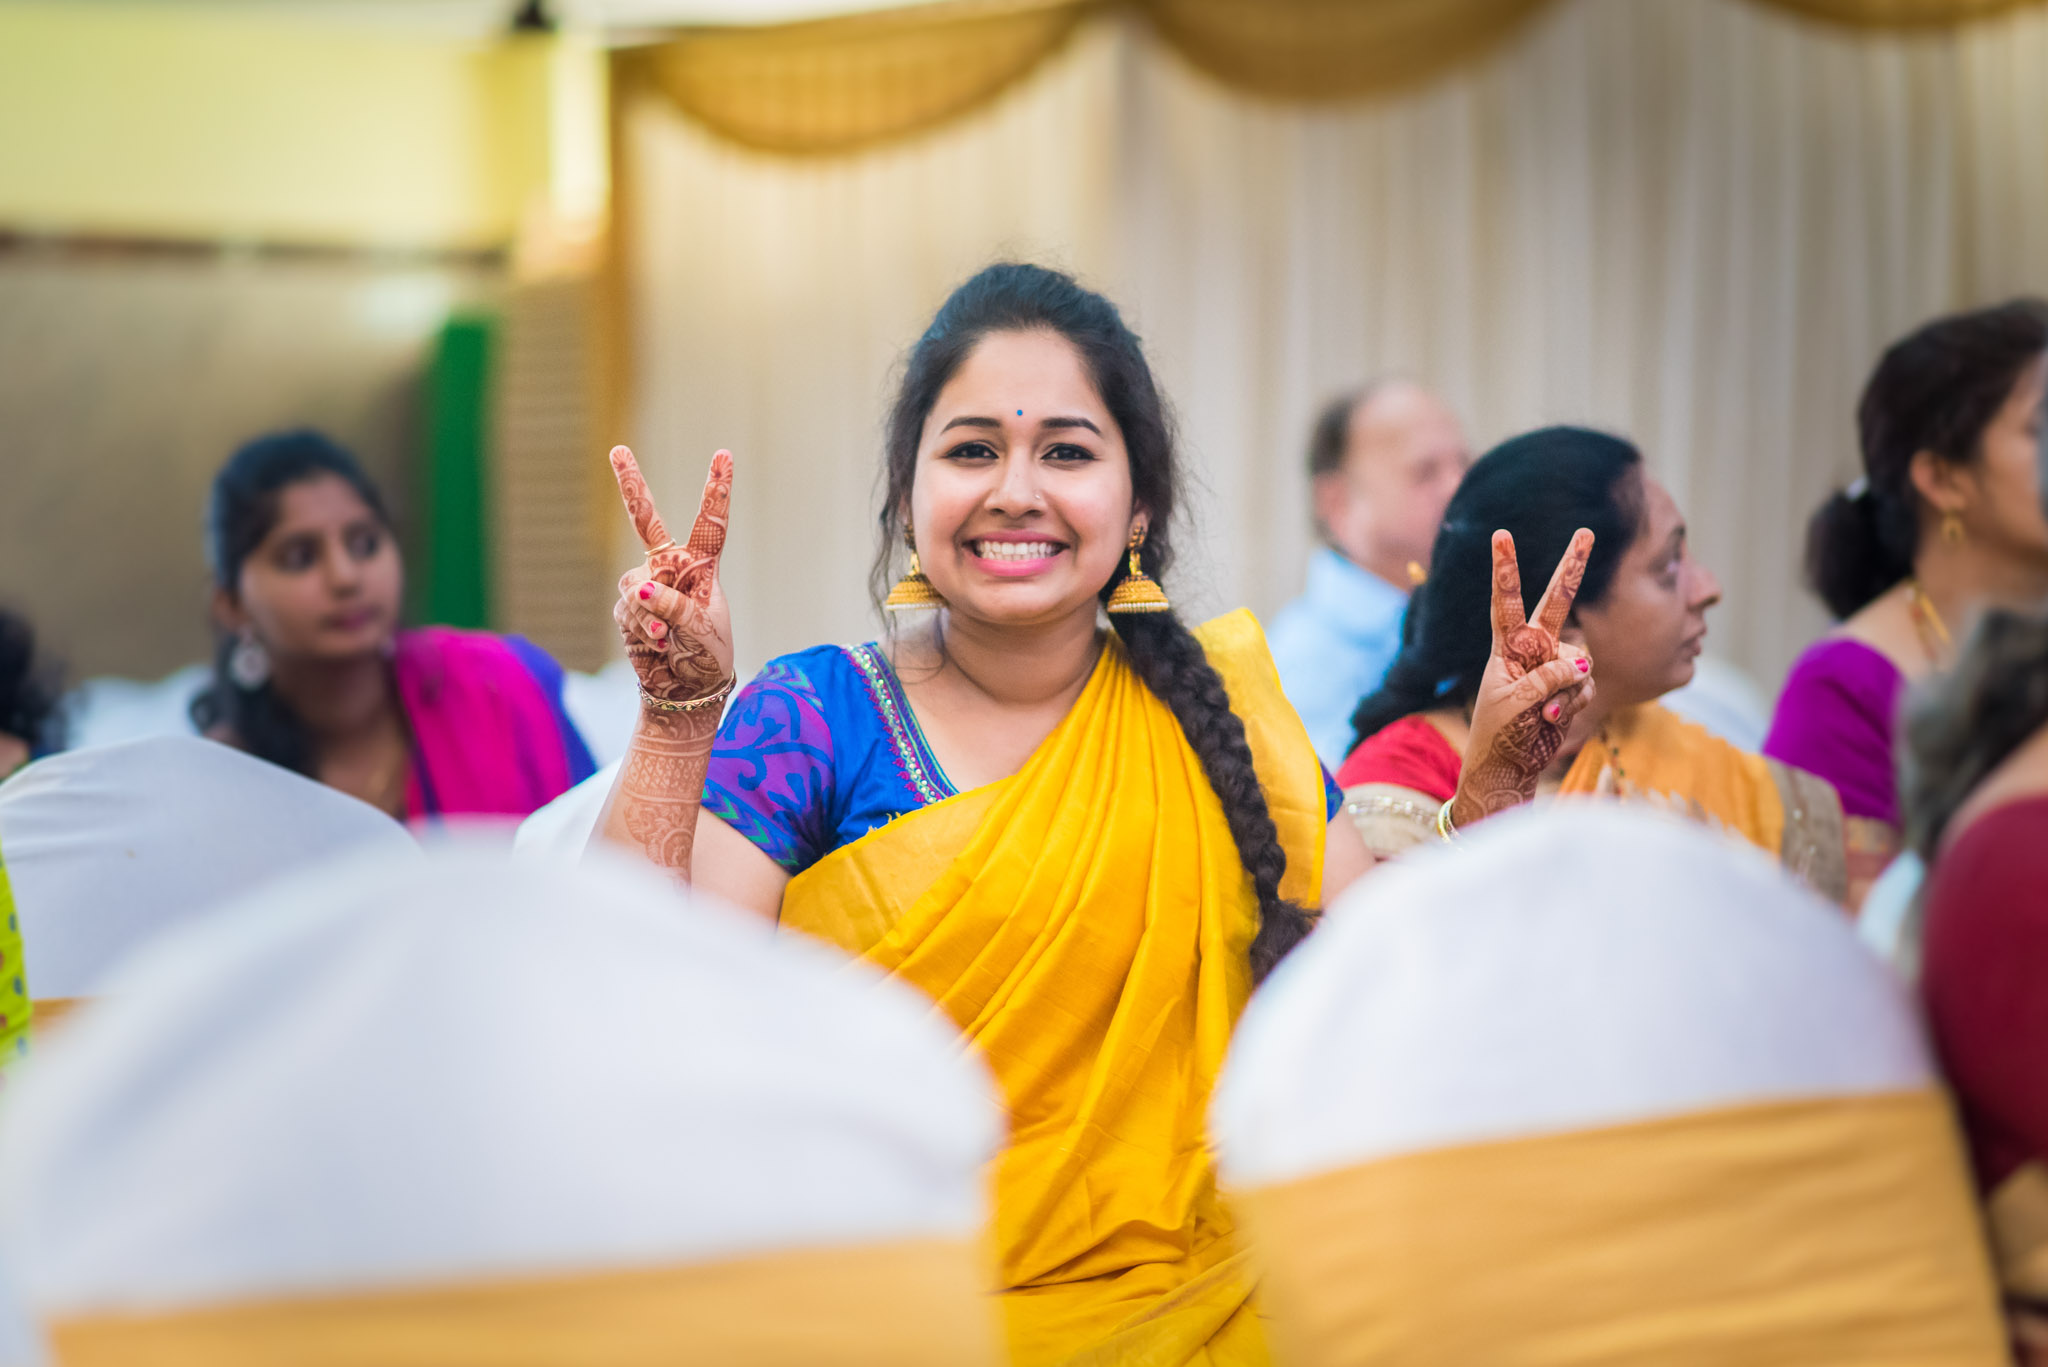 WhatKnot-Candid-Wedding-Photography-Mumbai-Bangalore-62